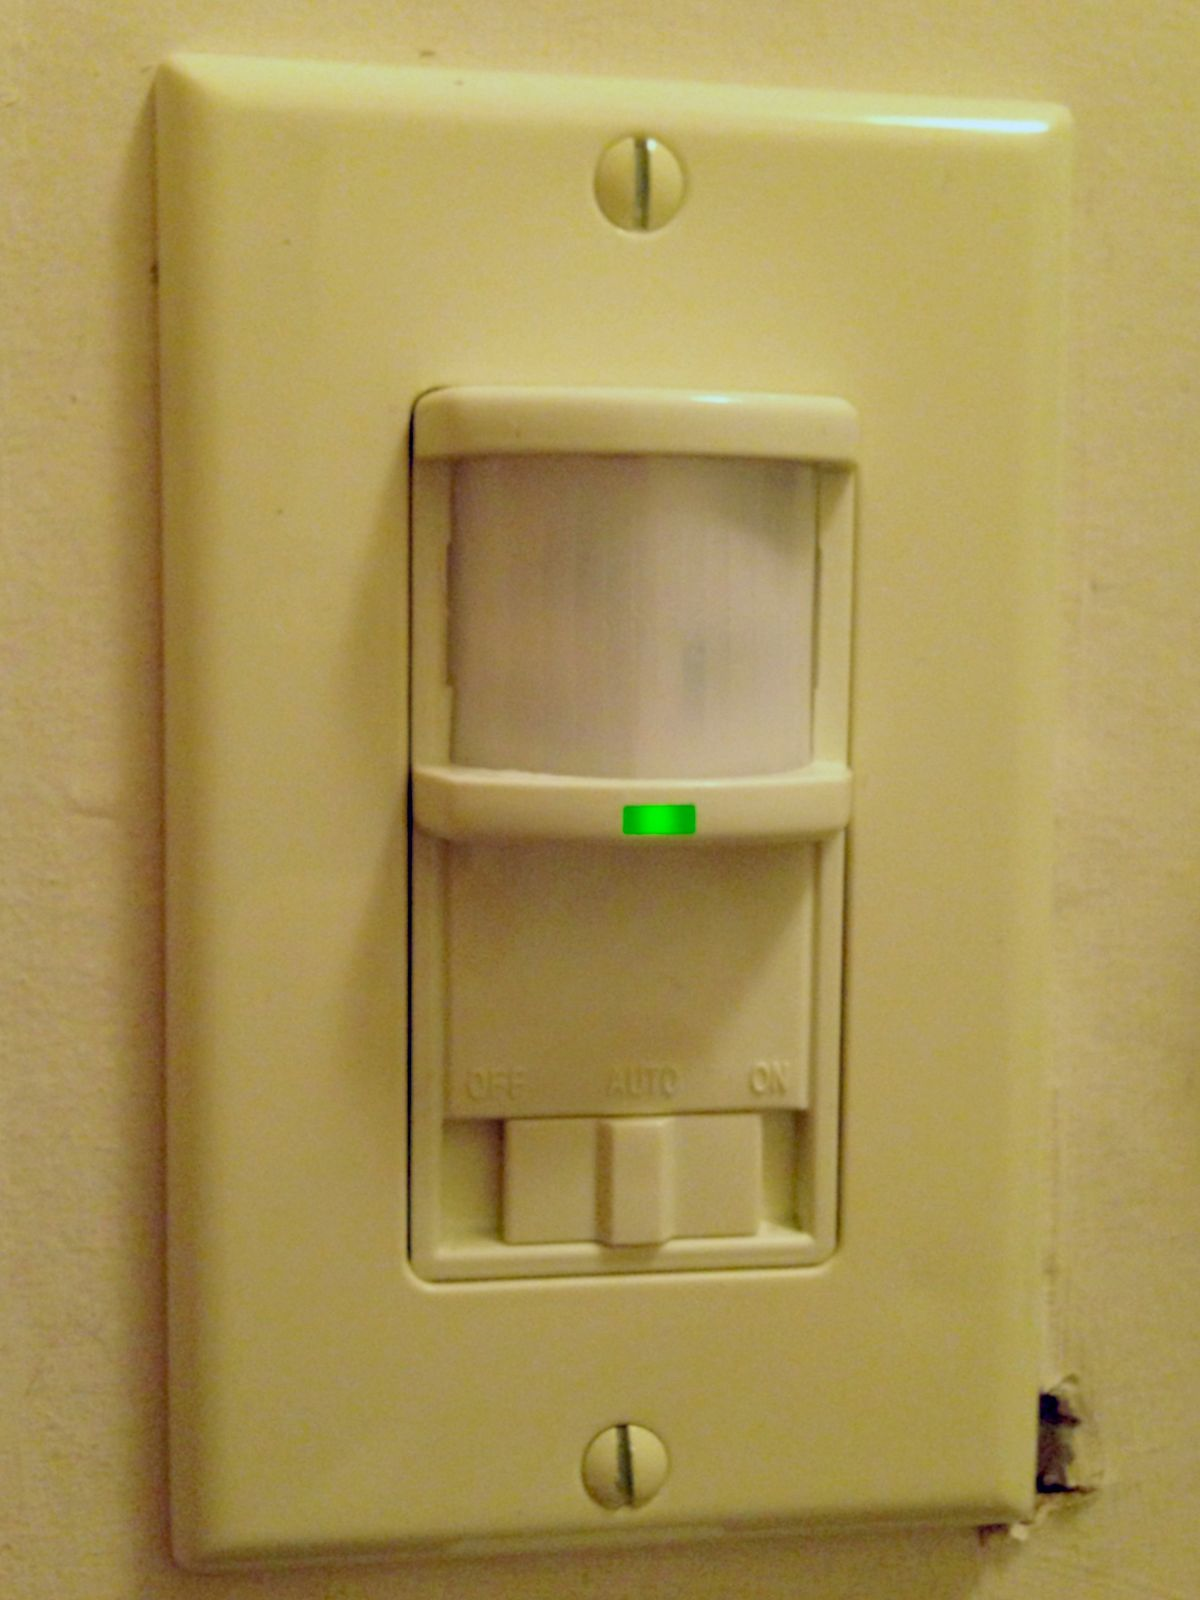 Occupancy Sensor Wikipedia Voiceactivated Delayed Light Switch Circuit 1 Basiccircuit